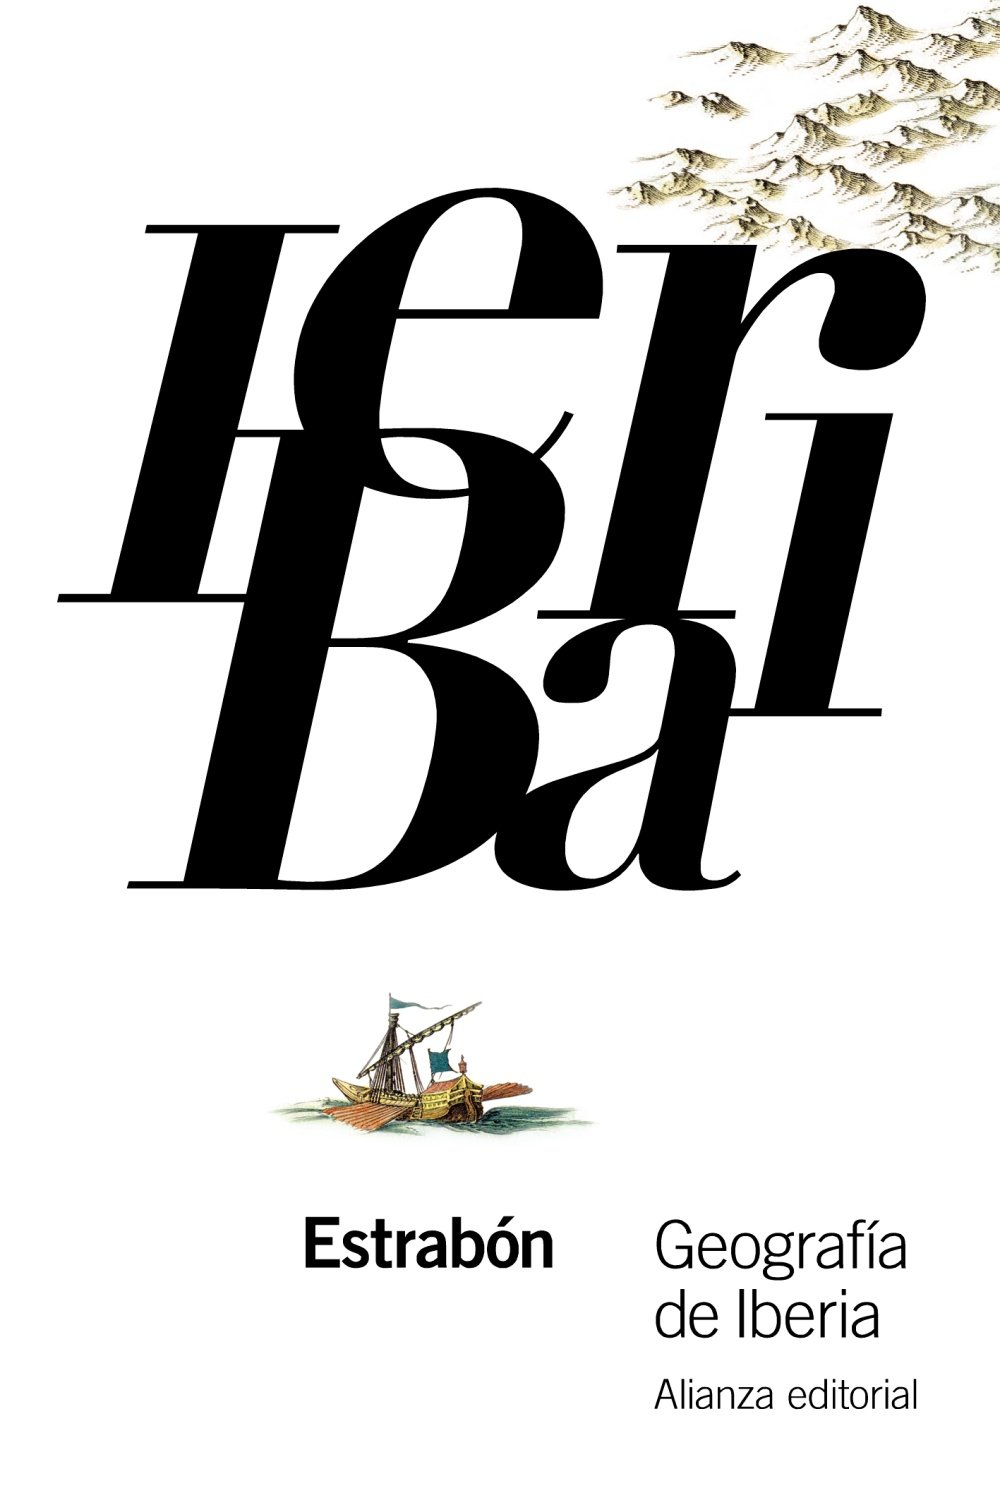 Download Ebook Geografía De Iberia